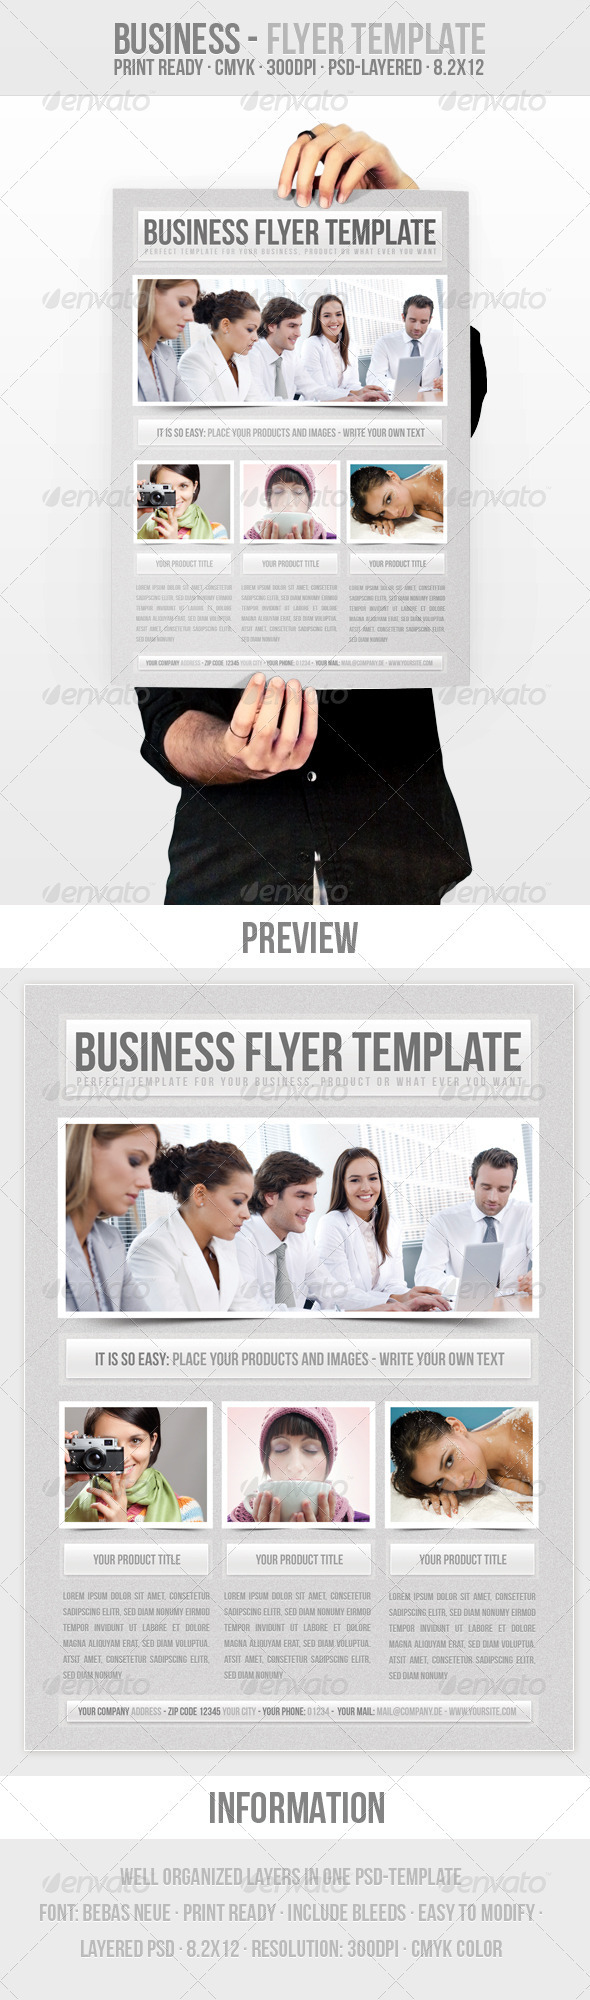 Business - Flyer Template - Corporate Flyers